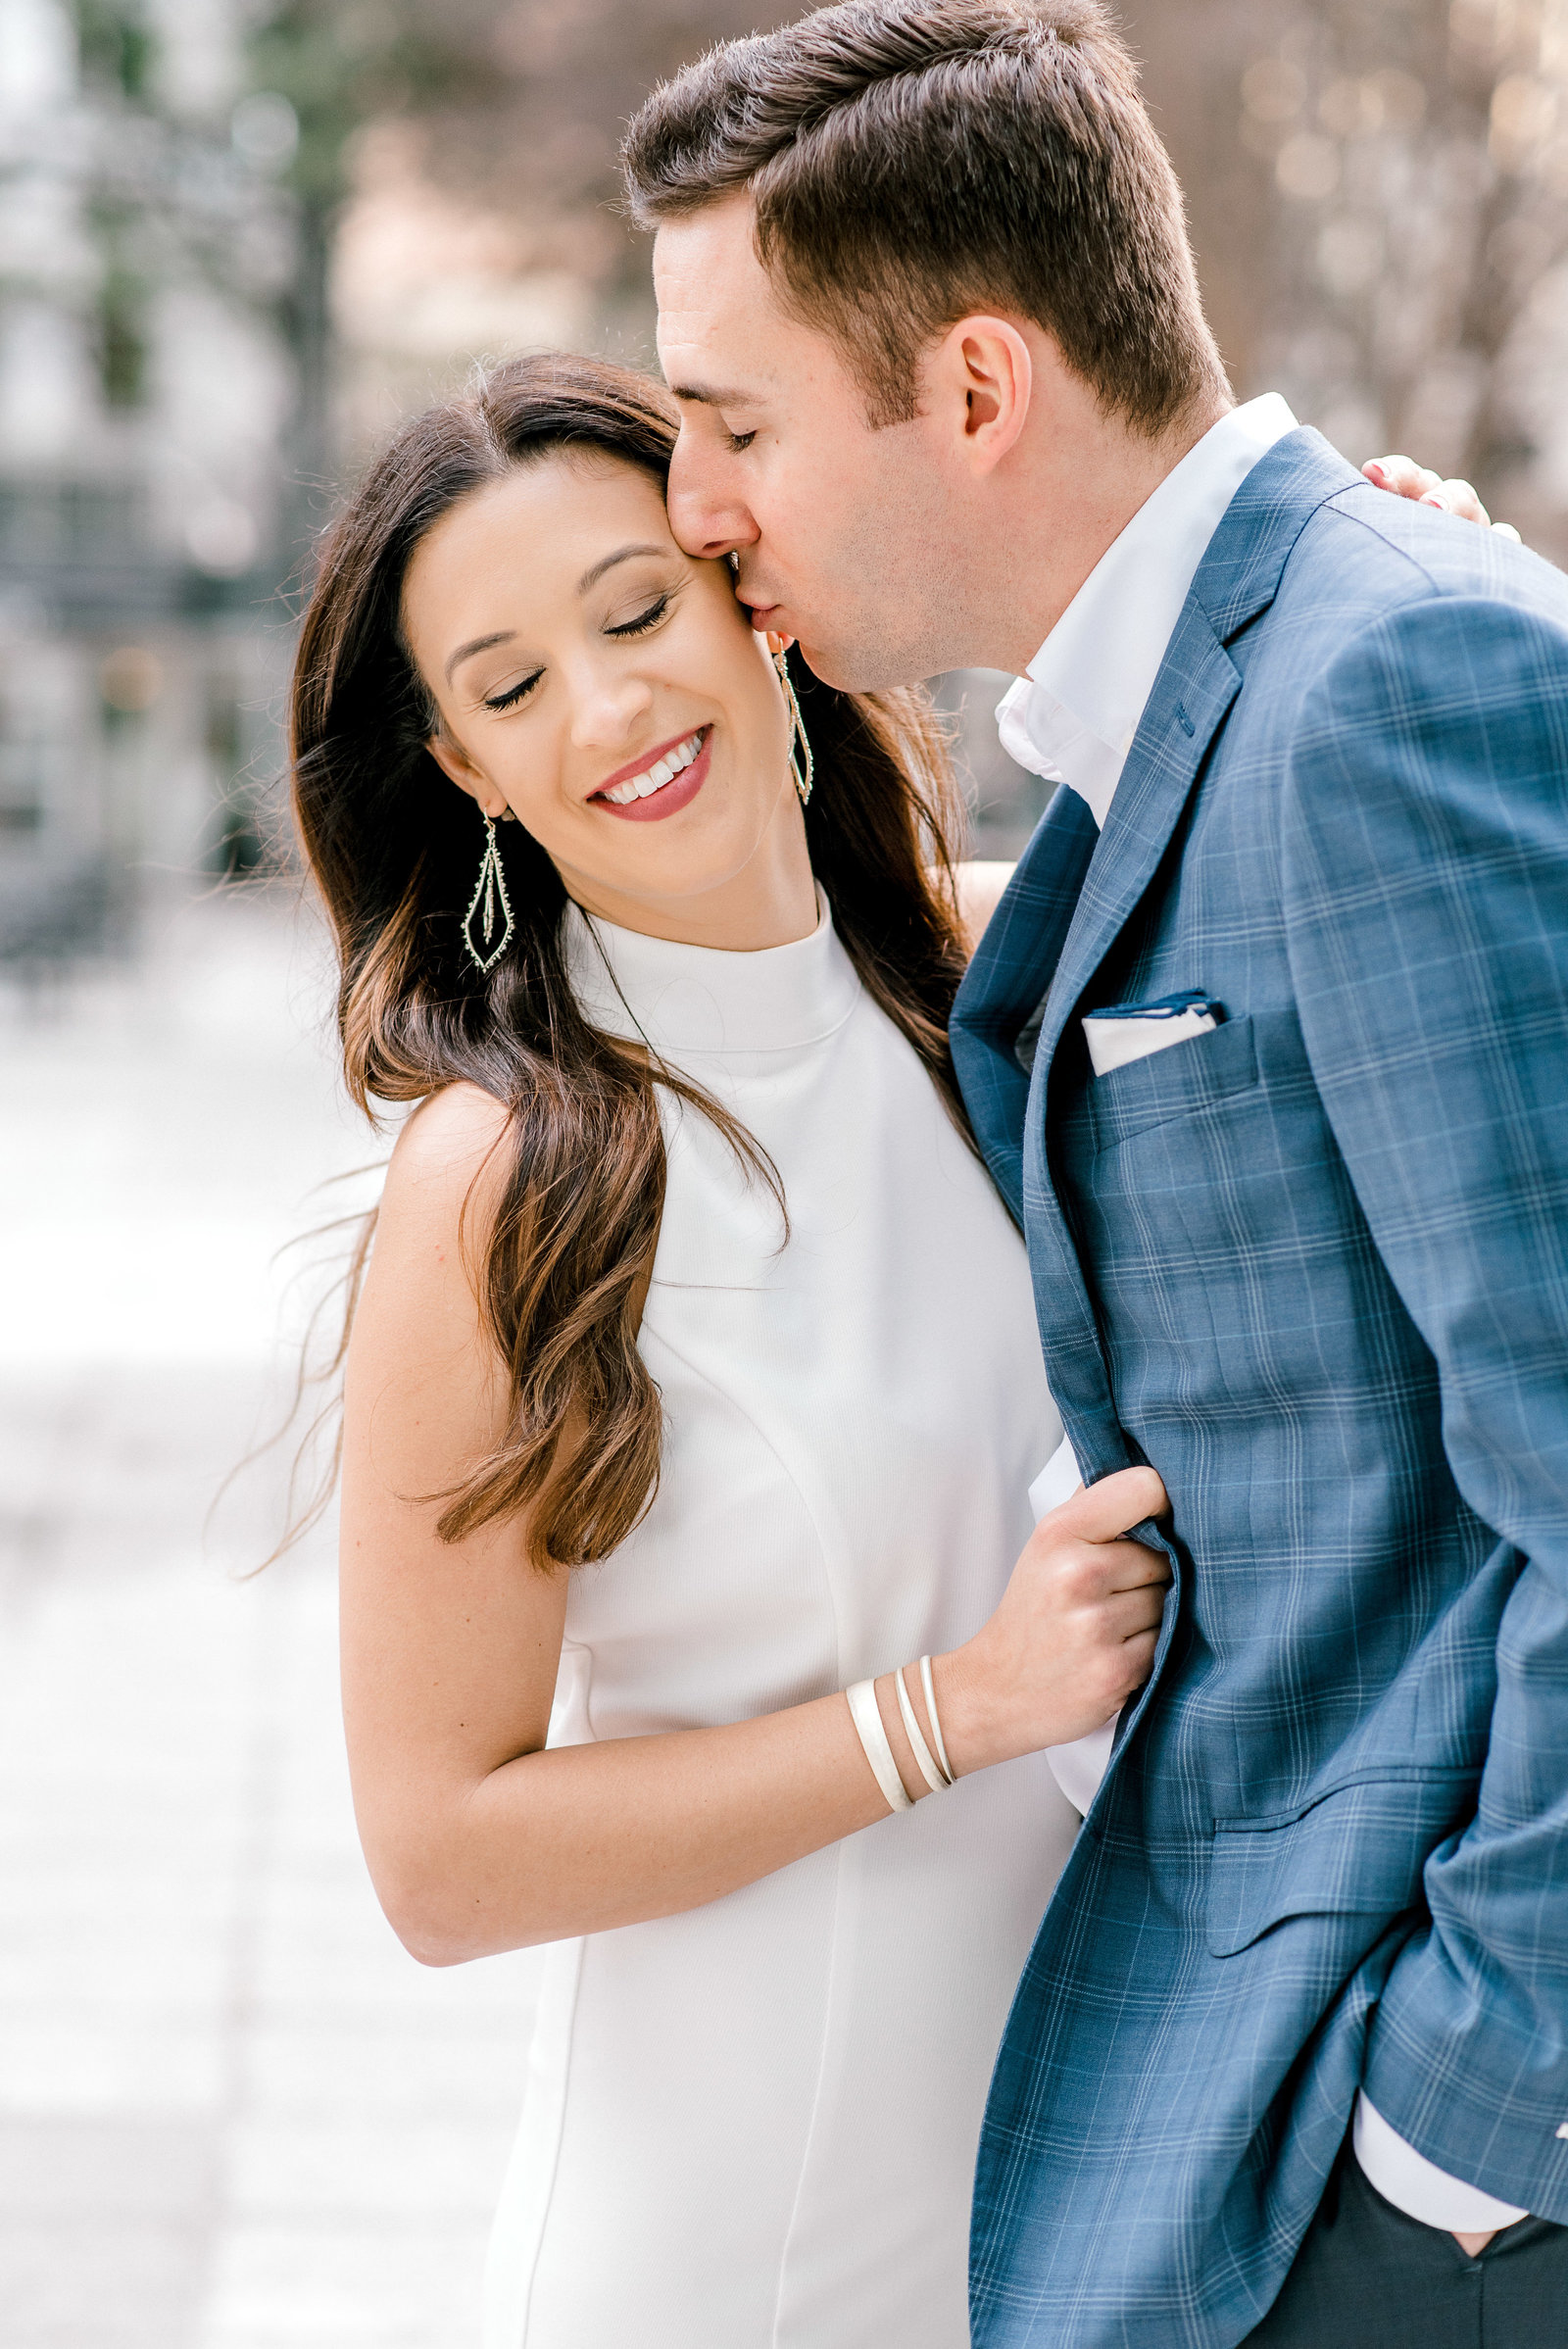 charlotte-engagement-candid-photographer-ballantyne-hotel-uptown-clt-weddings-bride-style-me-pretty-session-wedding-fine-art-bright-and-airy-film-photographer-alyssa-frost-photography-4